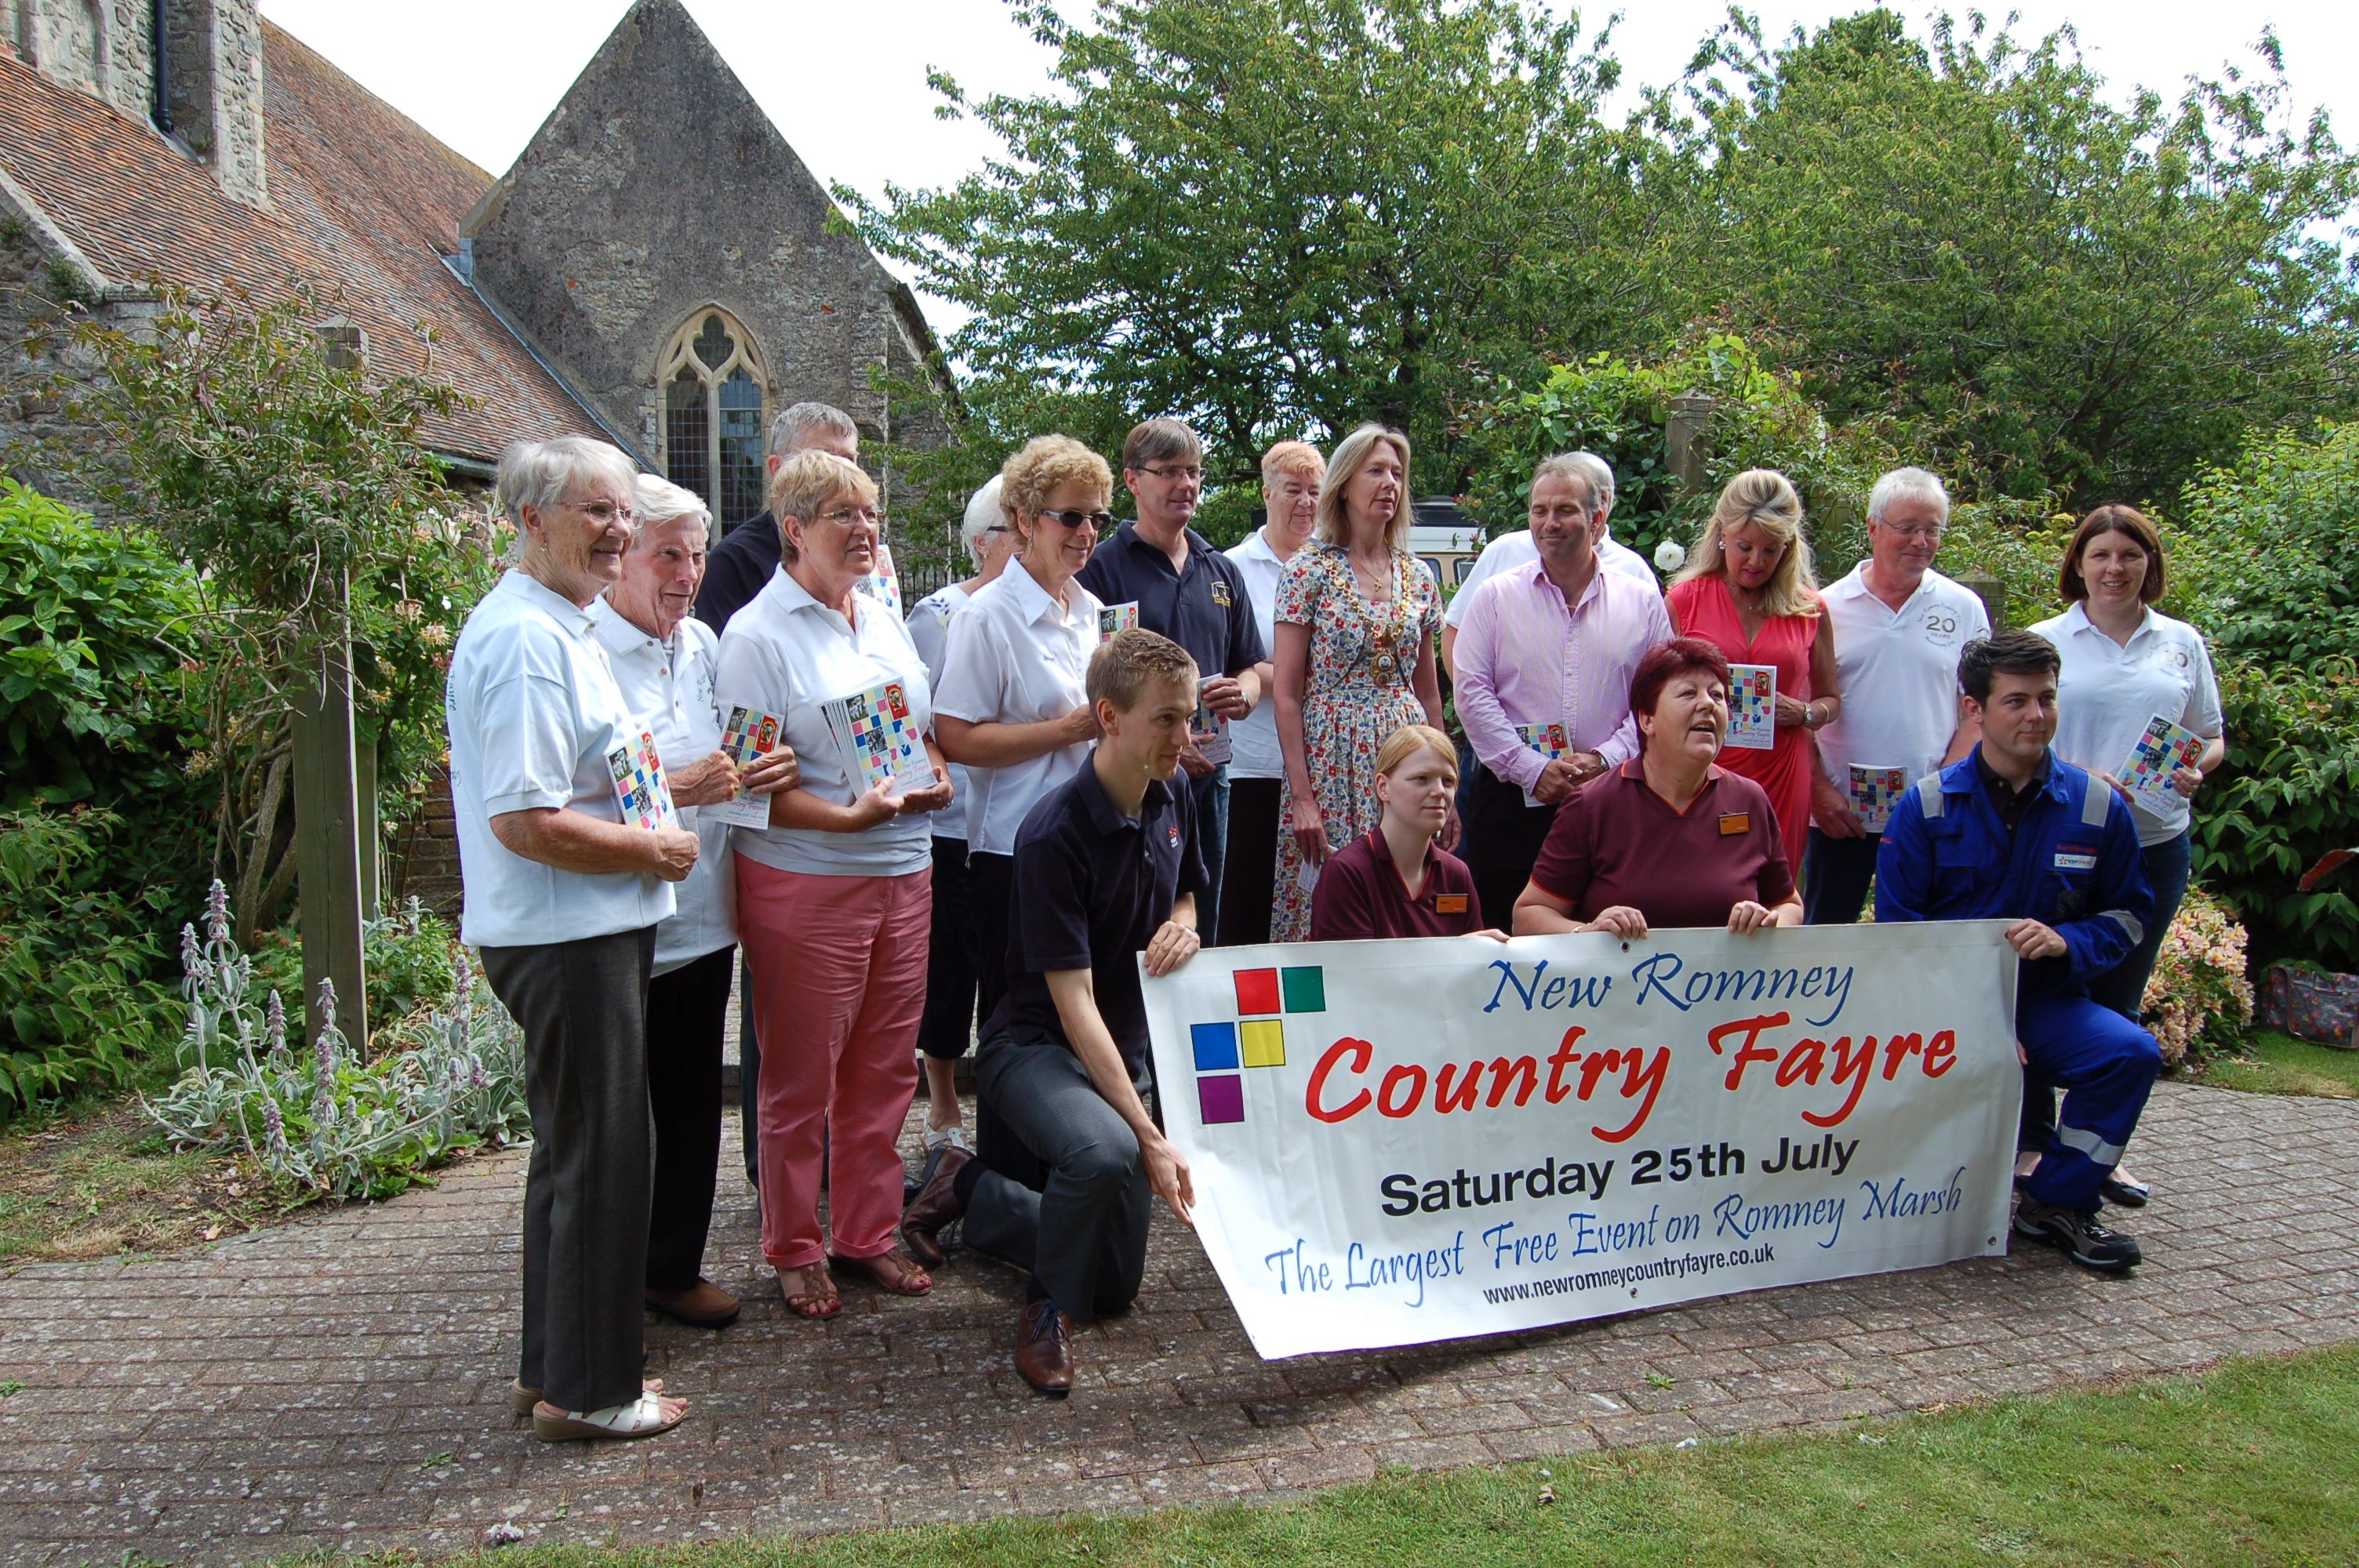 New Romney Country Fayre Comes of Age Saturday 25th July